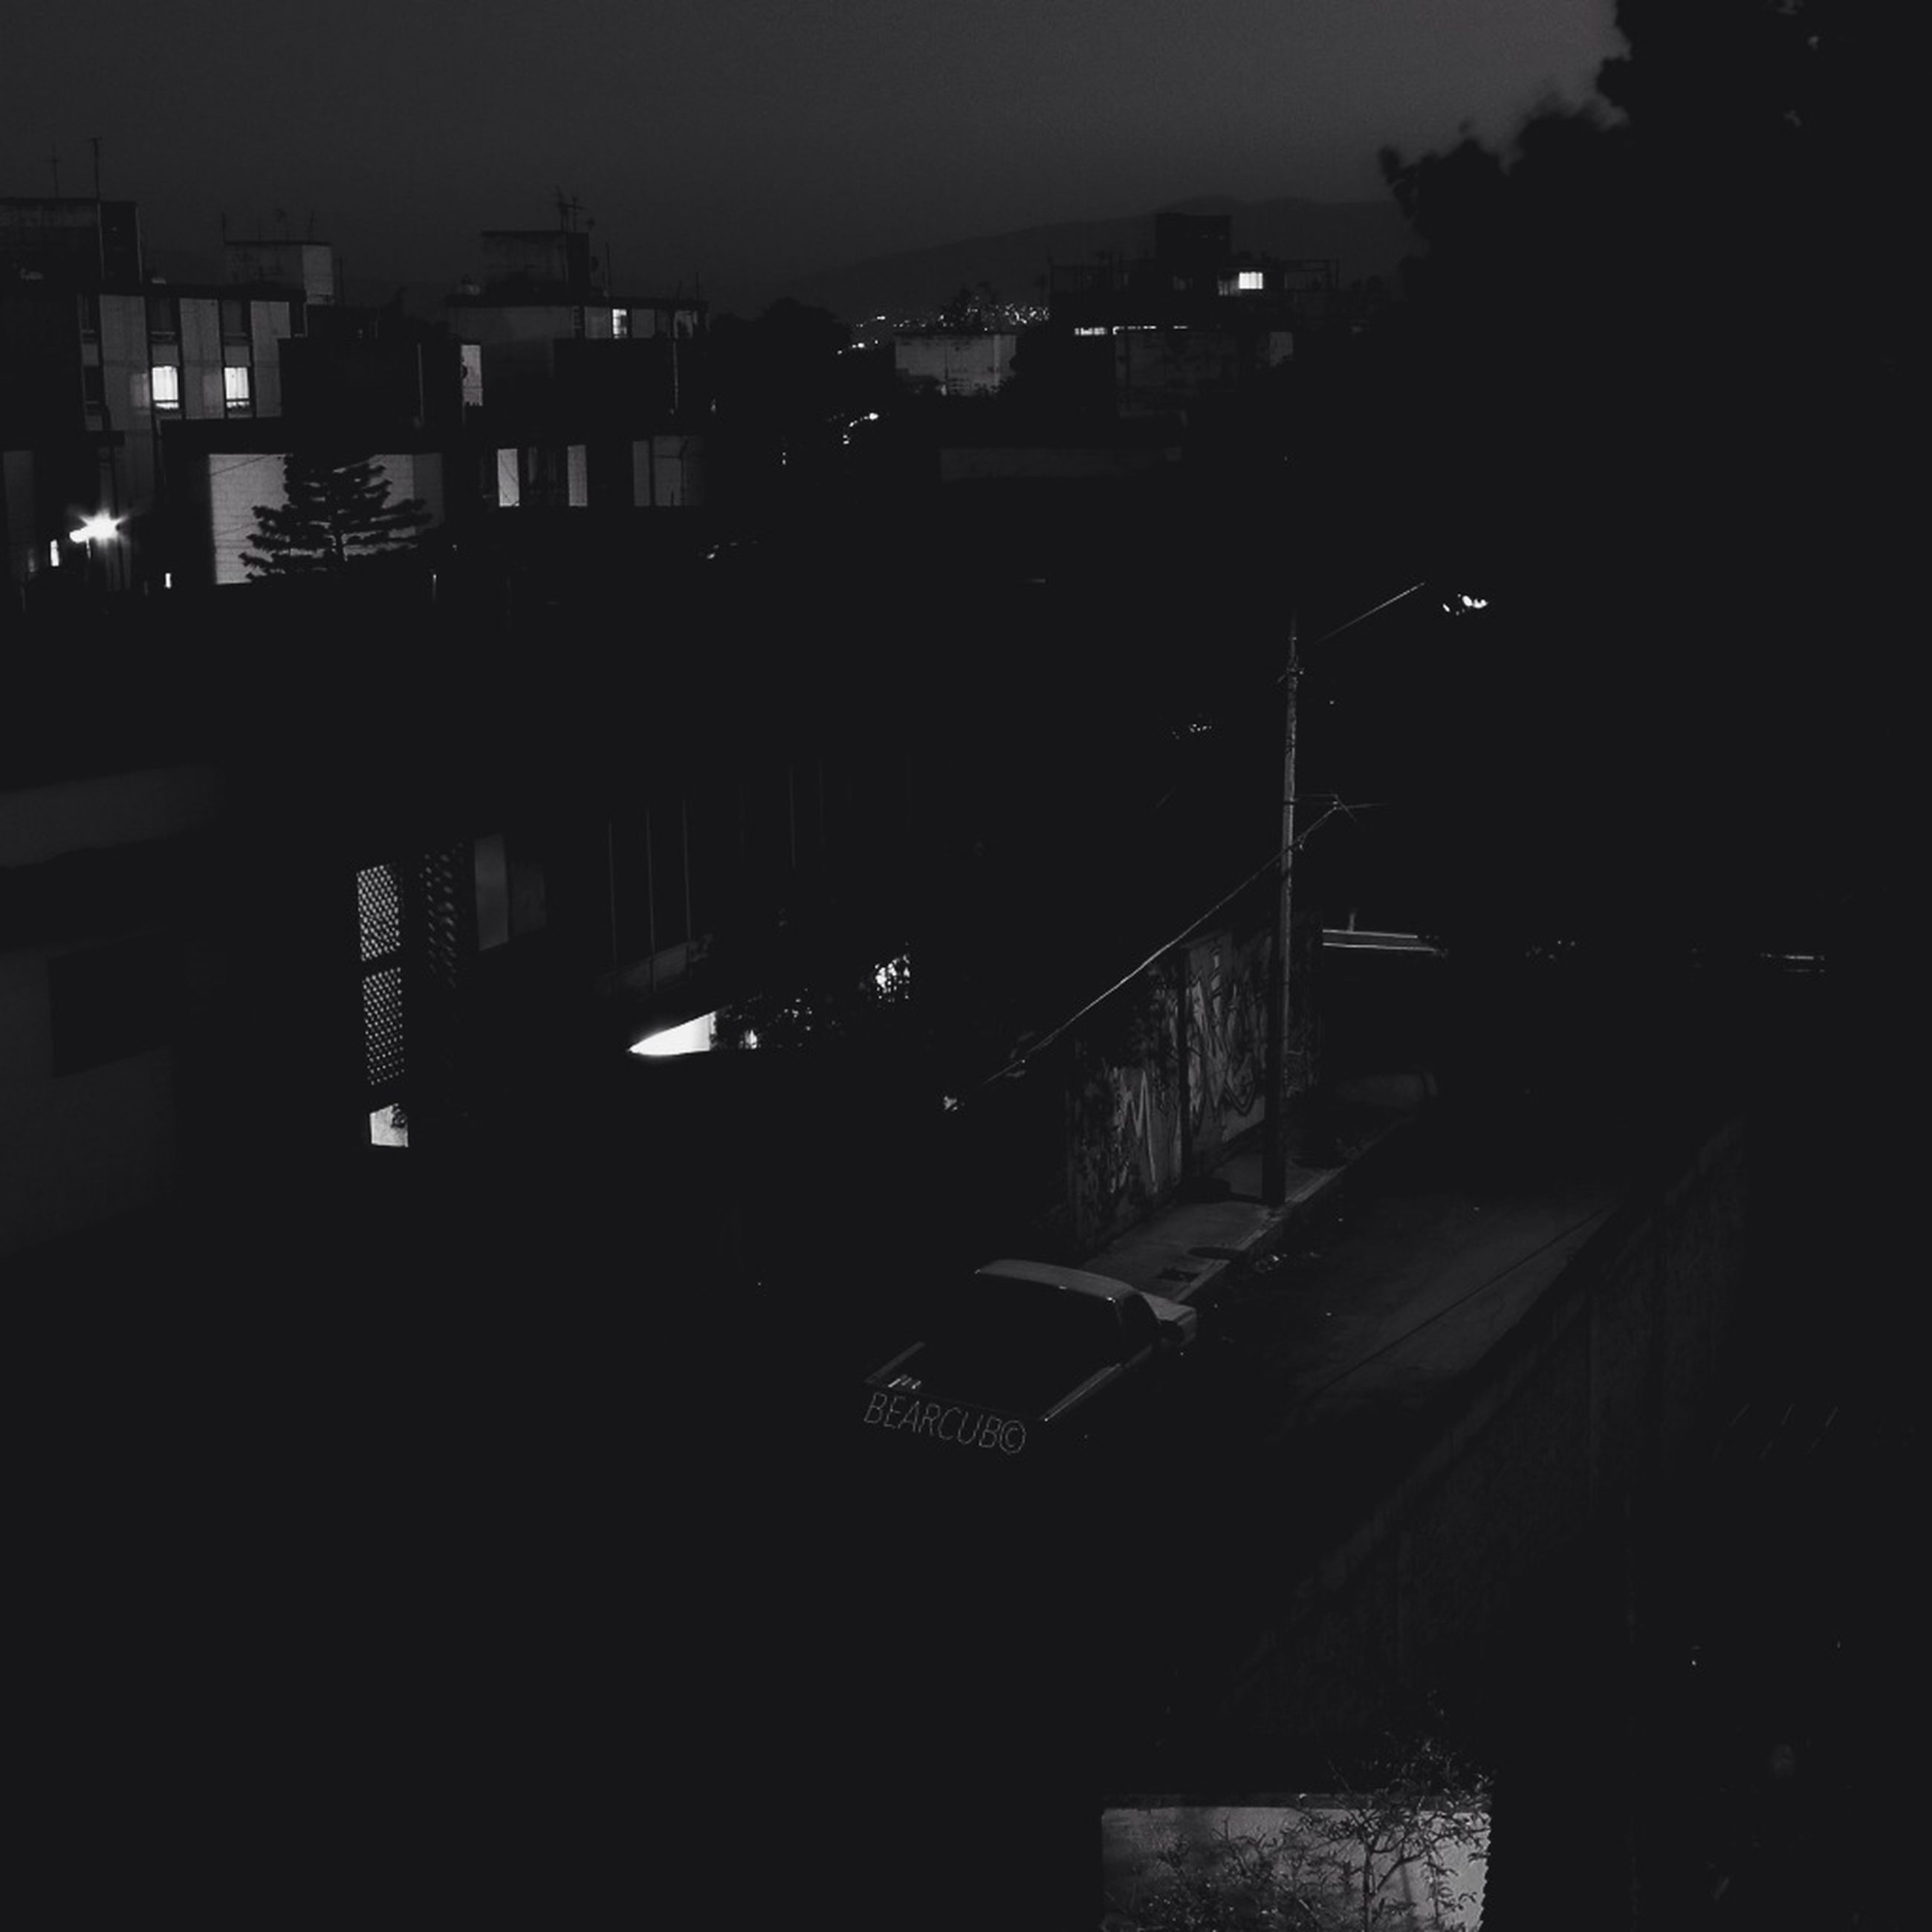 night, building exterior, illuminated, architecture, built structure, city, dark, residential structure, residential building, building, outdoors, street, sky, street light, house, residential district, city life, cityscape, no people, dusk